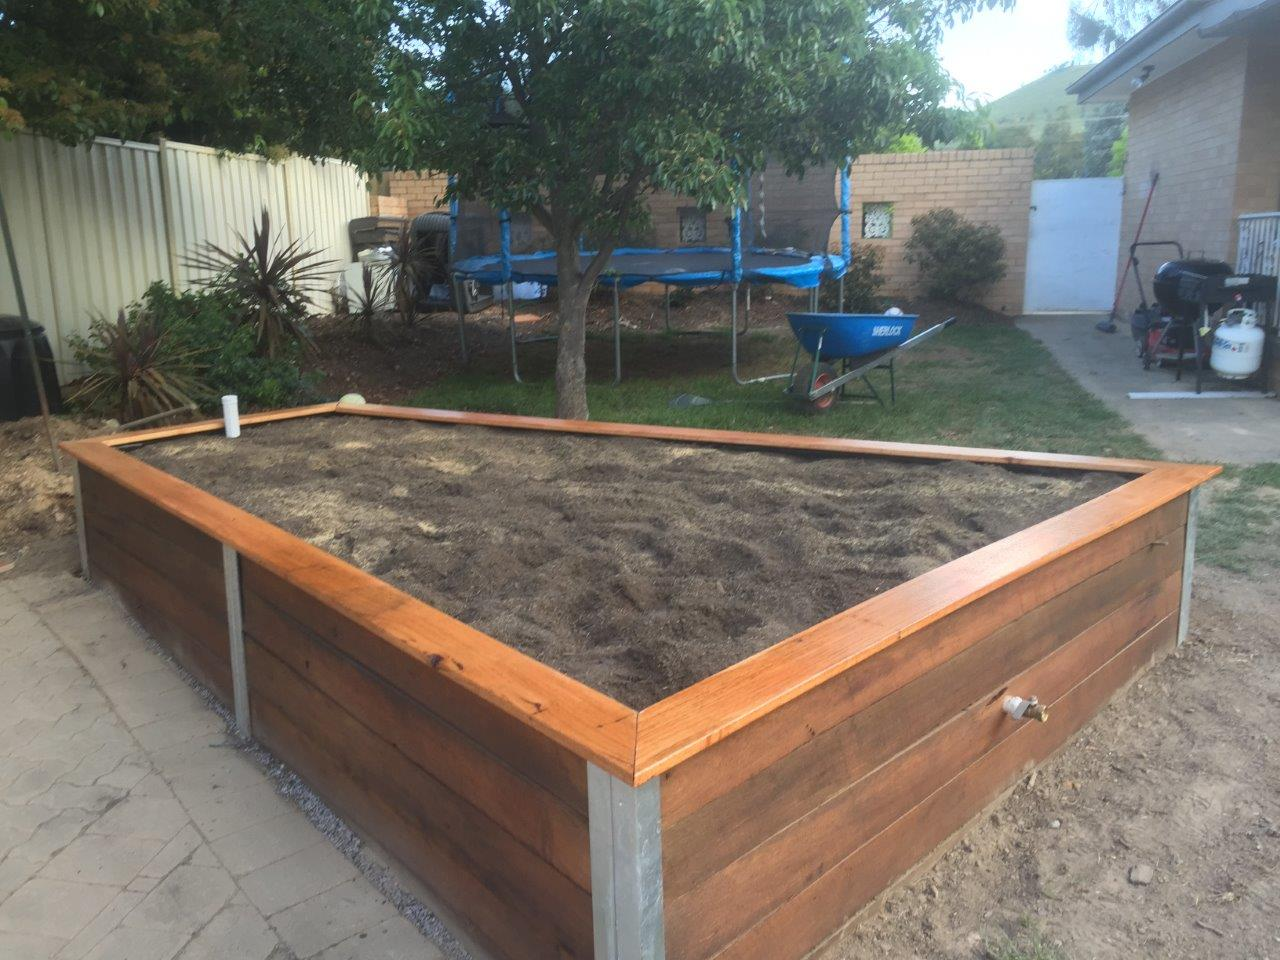 Wicking bed, completed